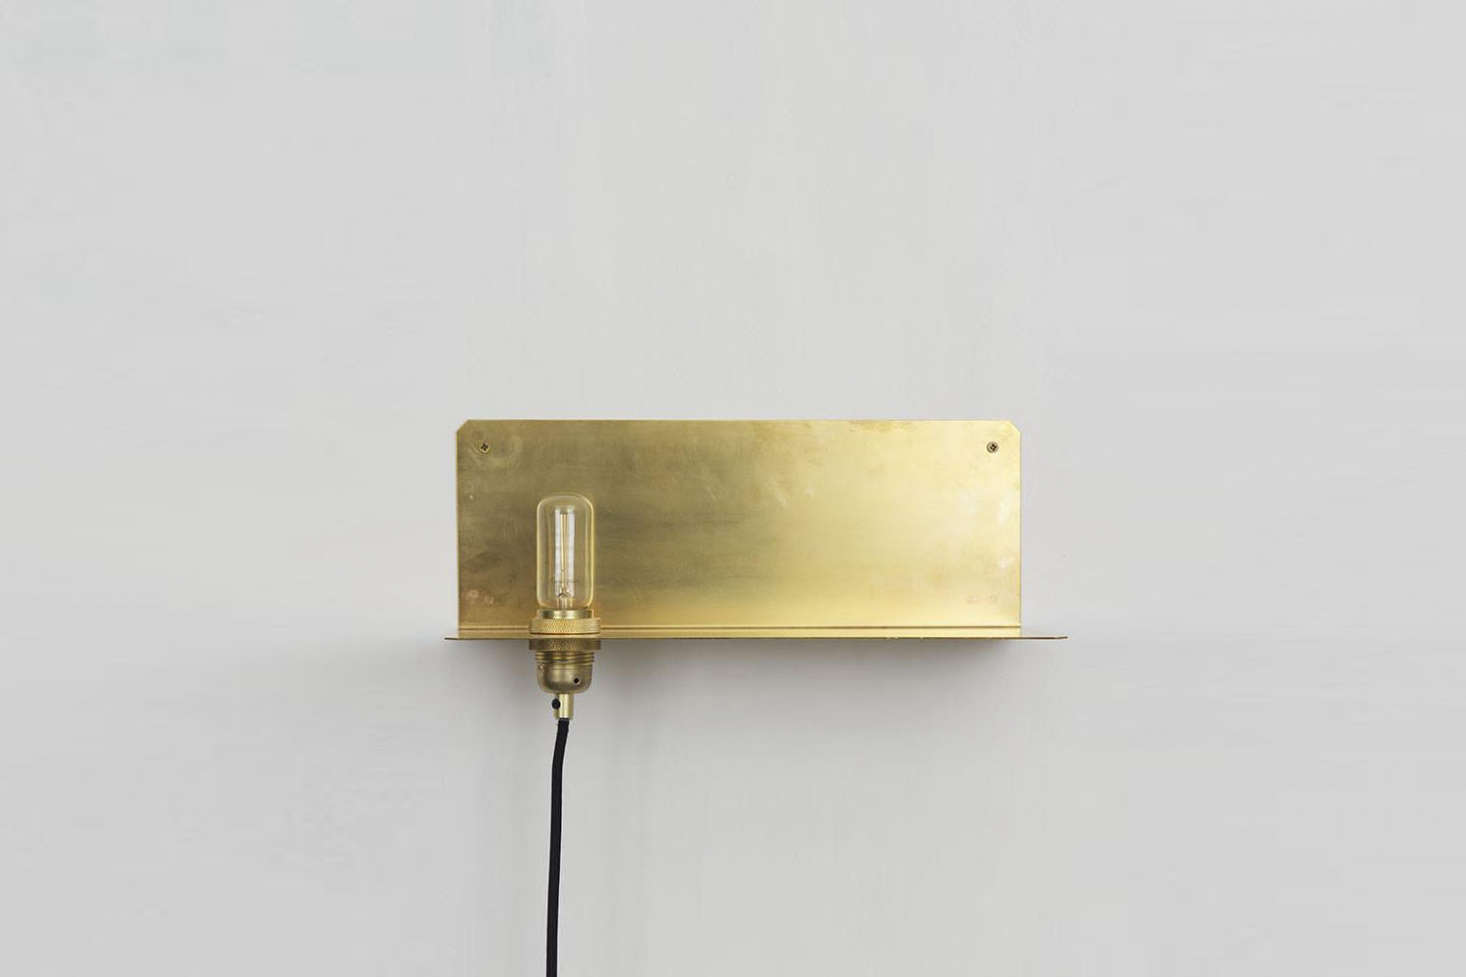 The Frama 90-Degree Wall Light in brass is $365.3